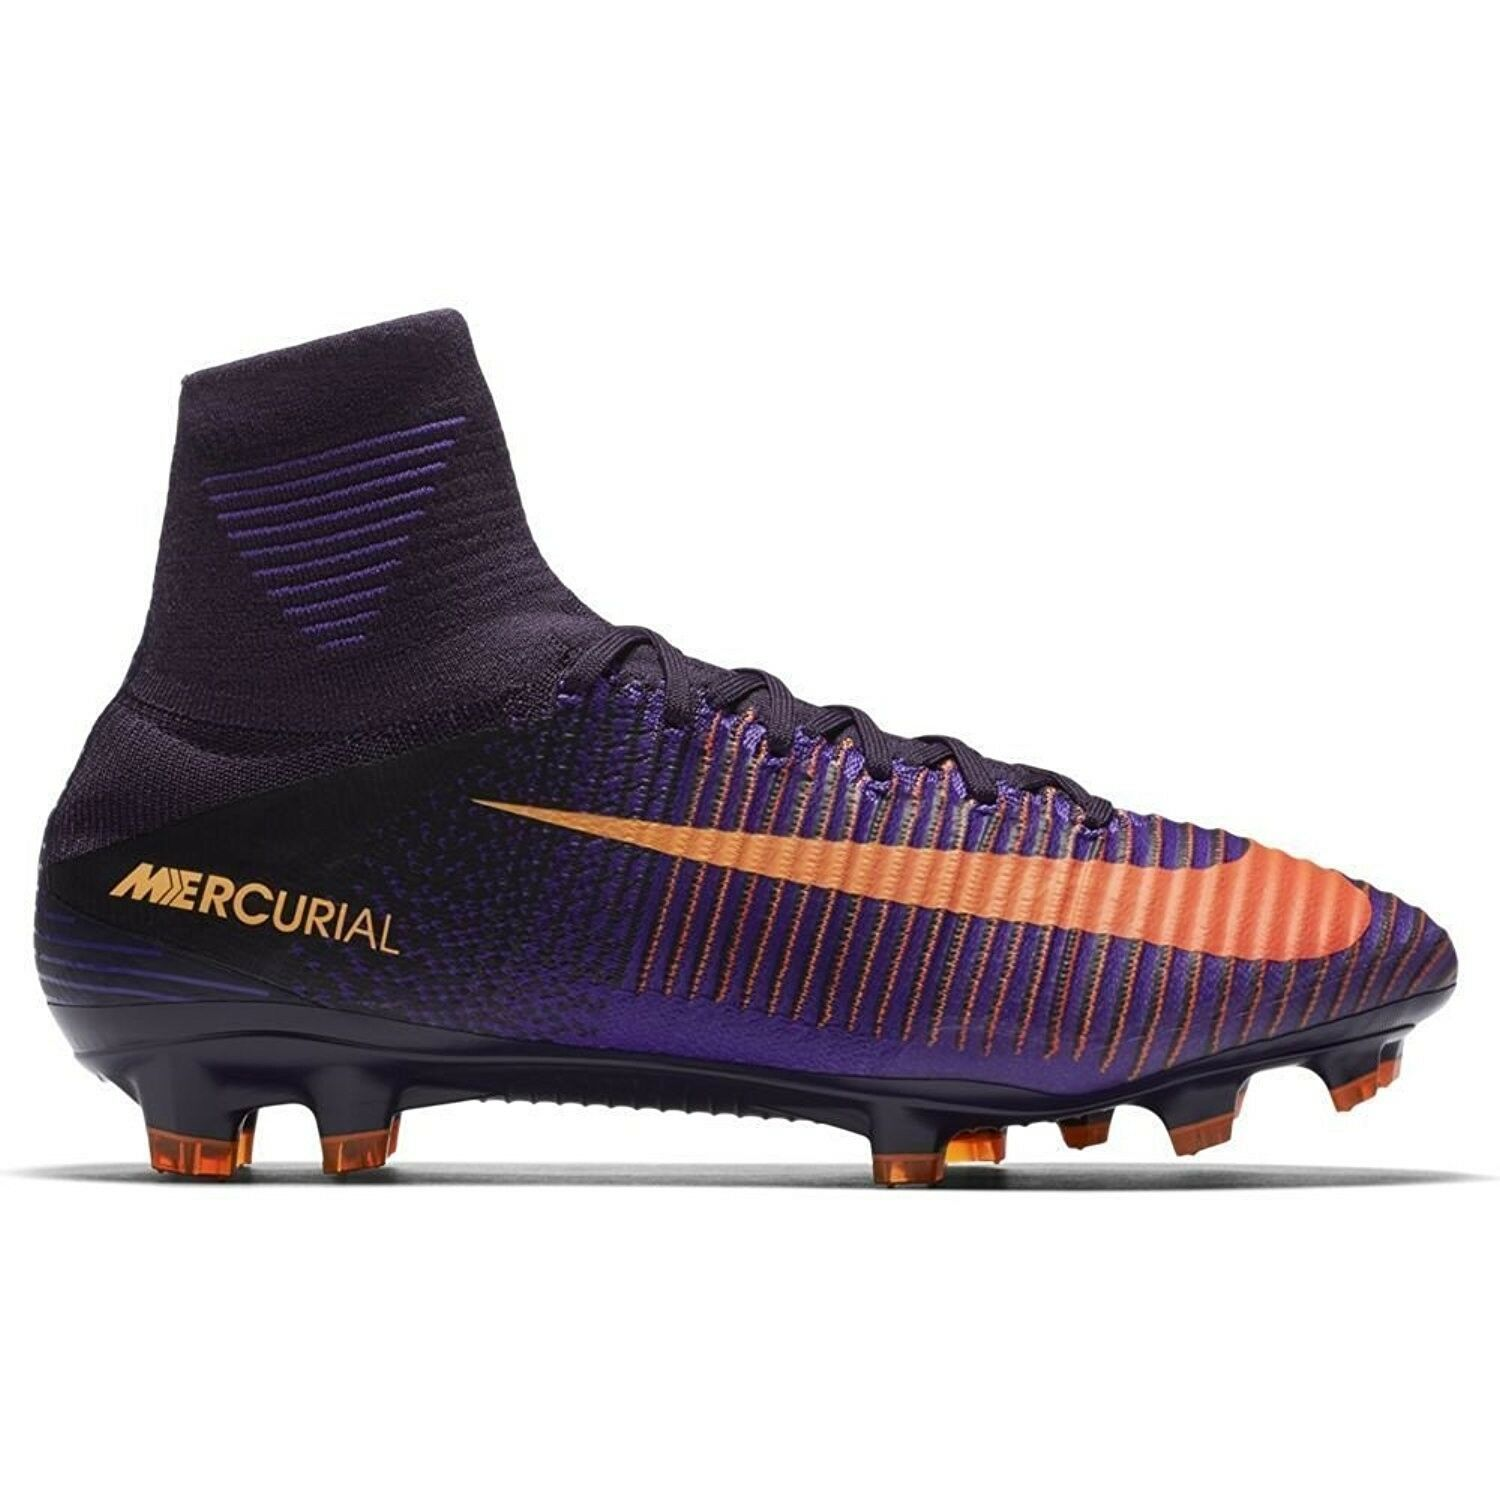 Nike Mercurial Superfly V Firm Ground Cleats